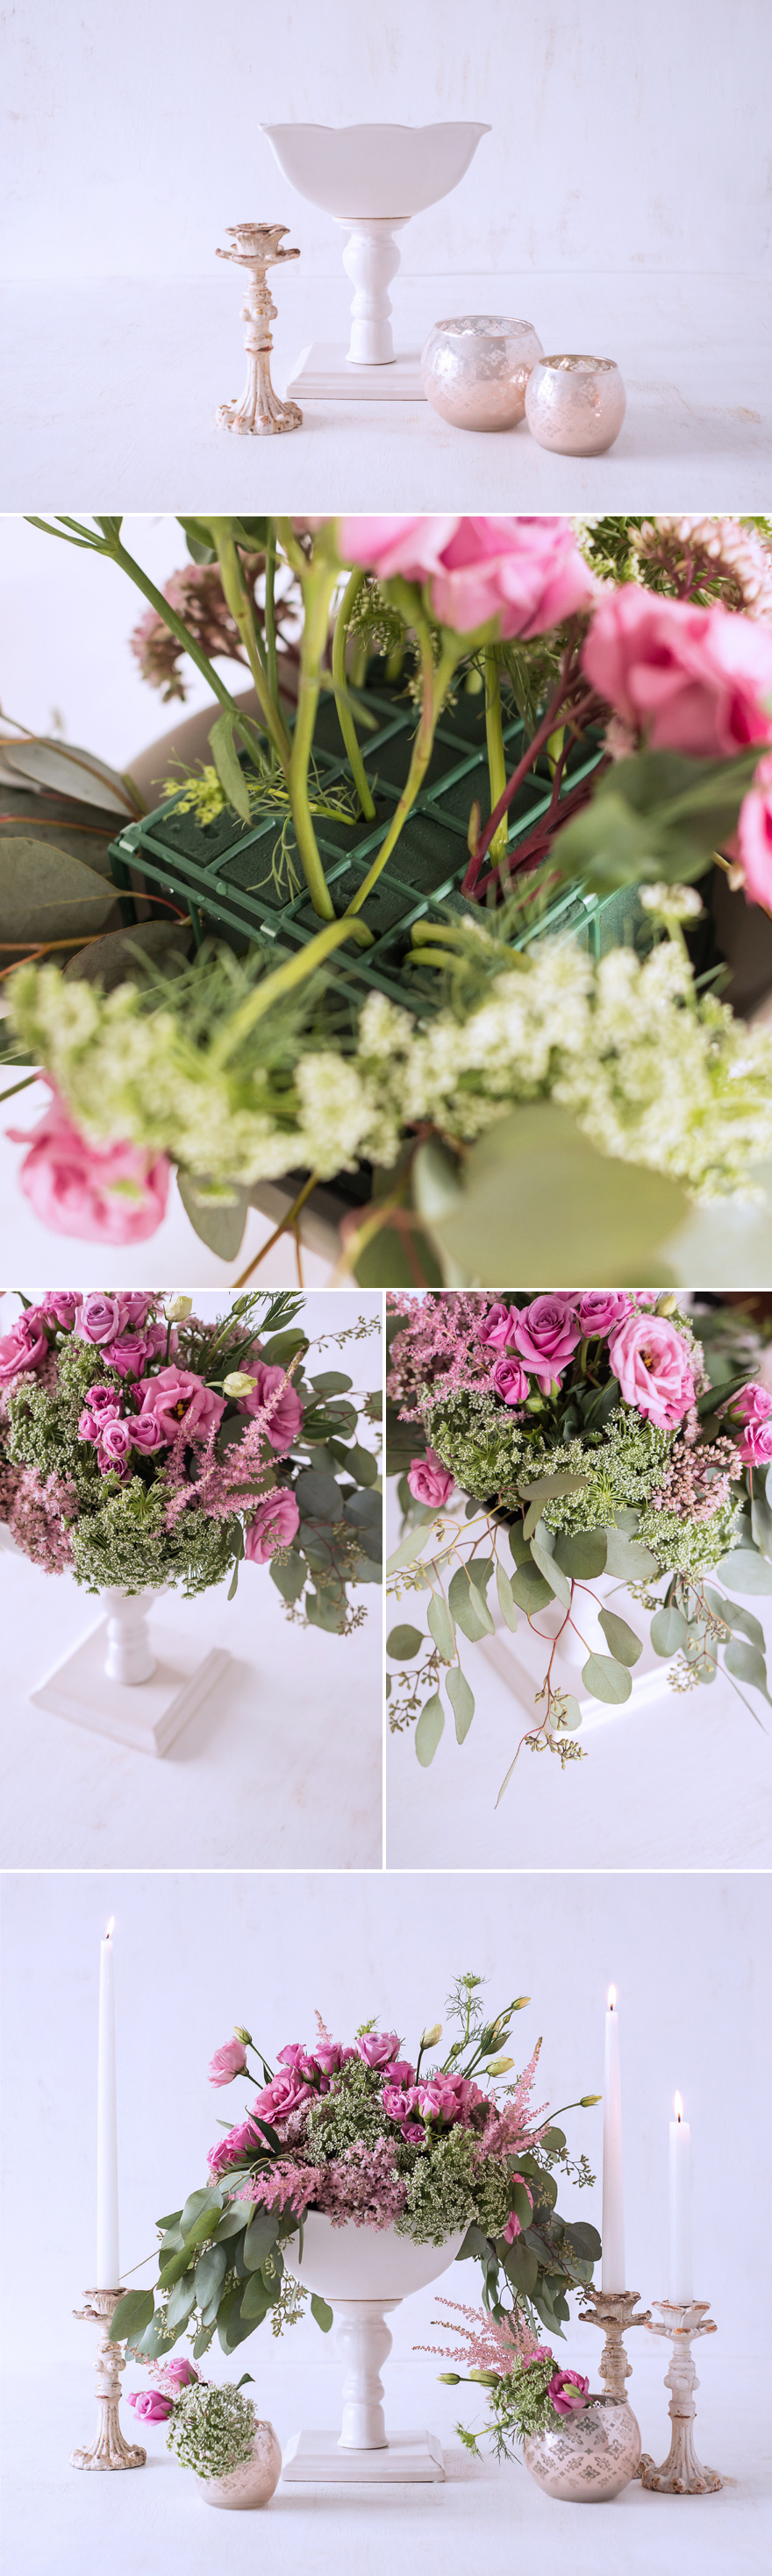 Pink and Green DIY Centrepiece with Lisianthus Astilbe Queen Anne's Lace Spray Roses Seeded Eucalyptus and Sedum | Confetti.co.uk